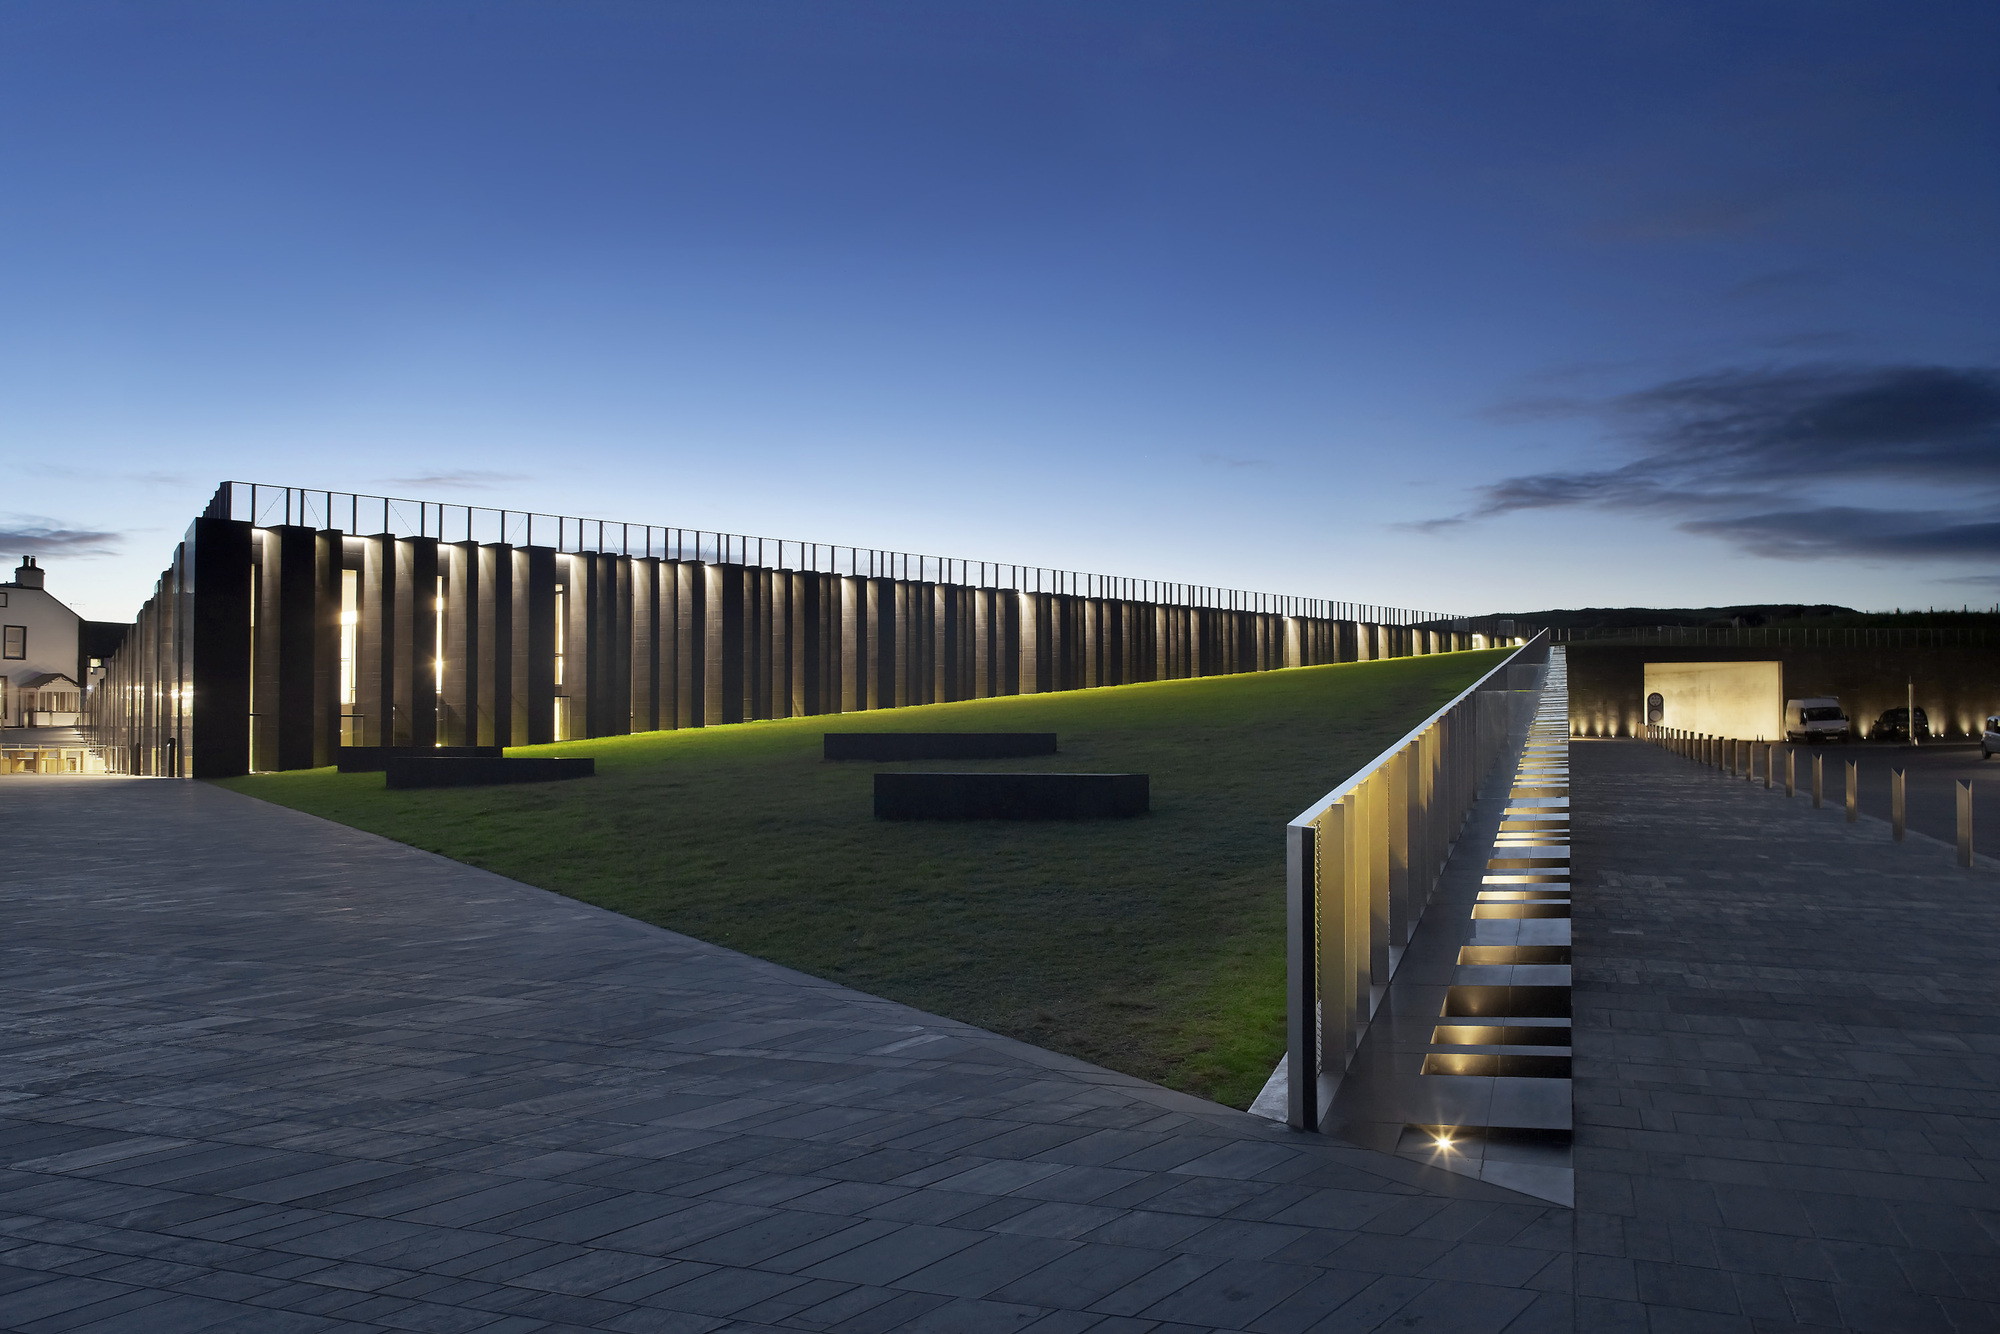 Exquisite form of The Giant's Causeway Visitor Centre